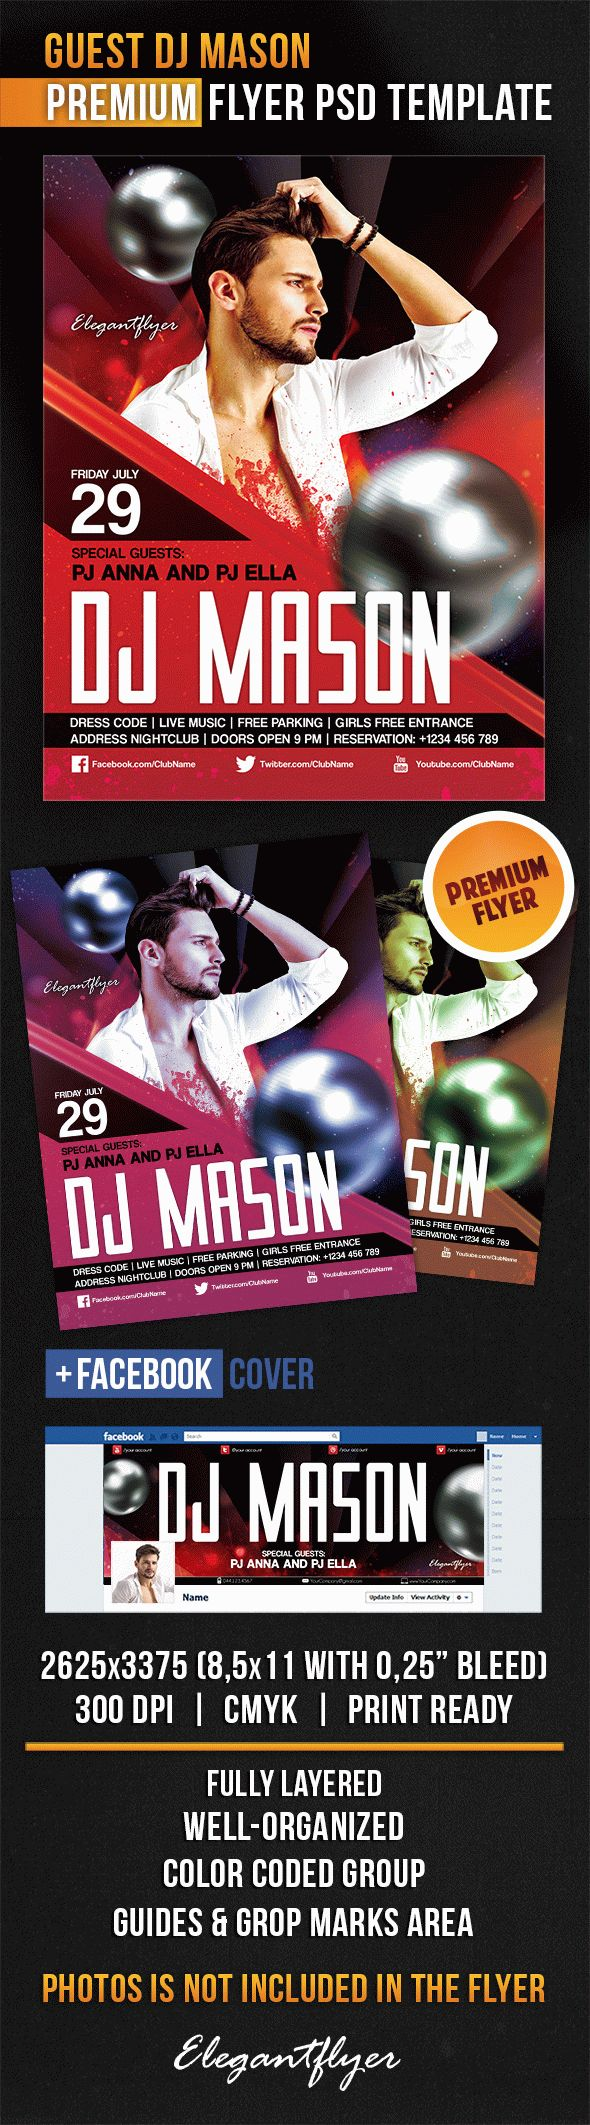 Guest Dj Mason – Flyer PSD Template + Facebook Cover